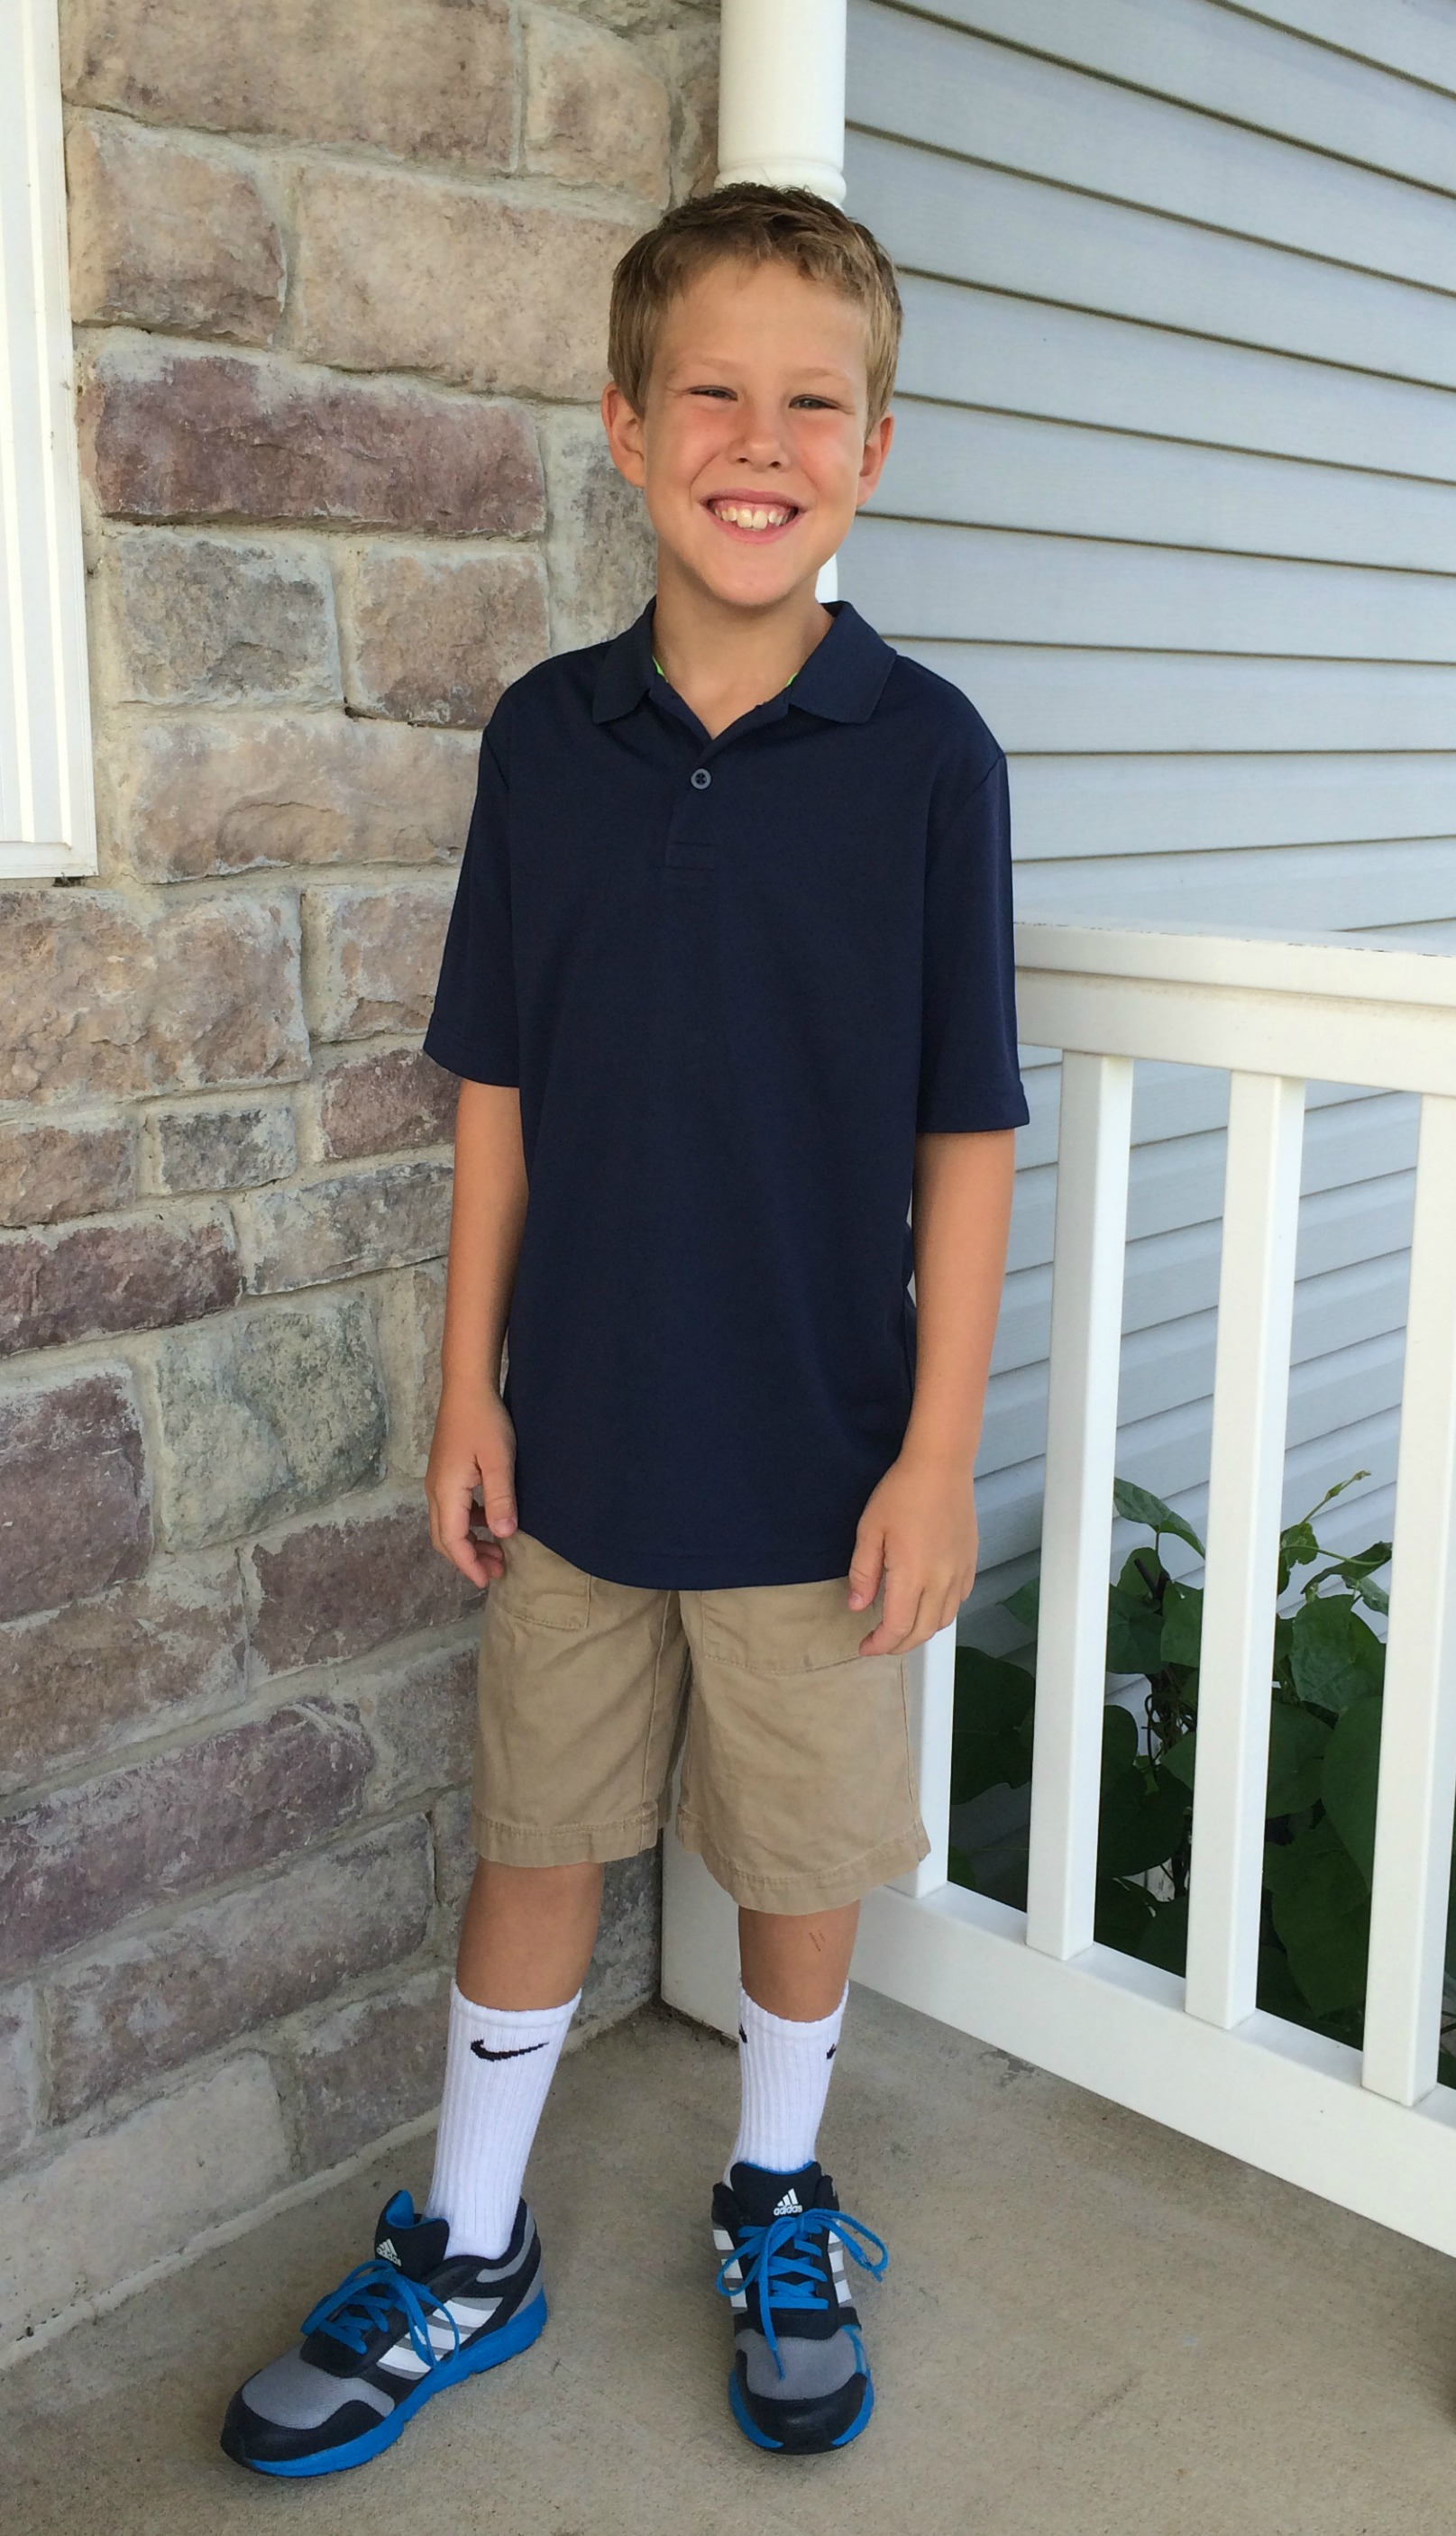 Shopping School Uniforms From Kohl S For Backtoschool